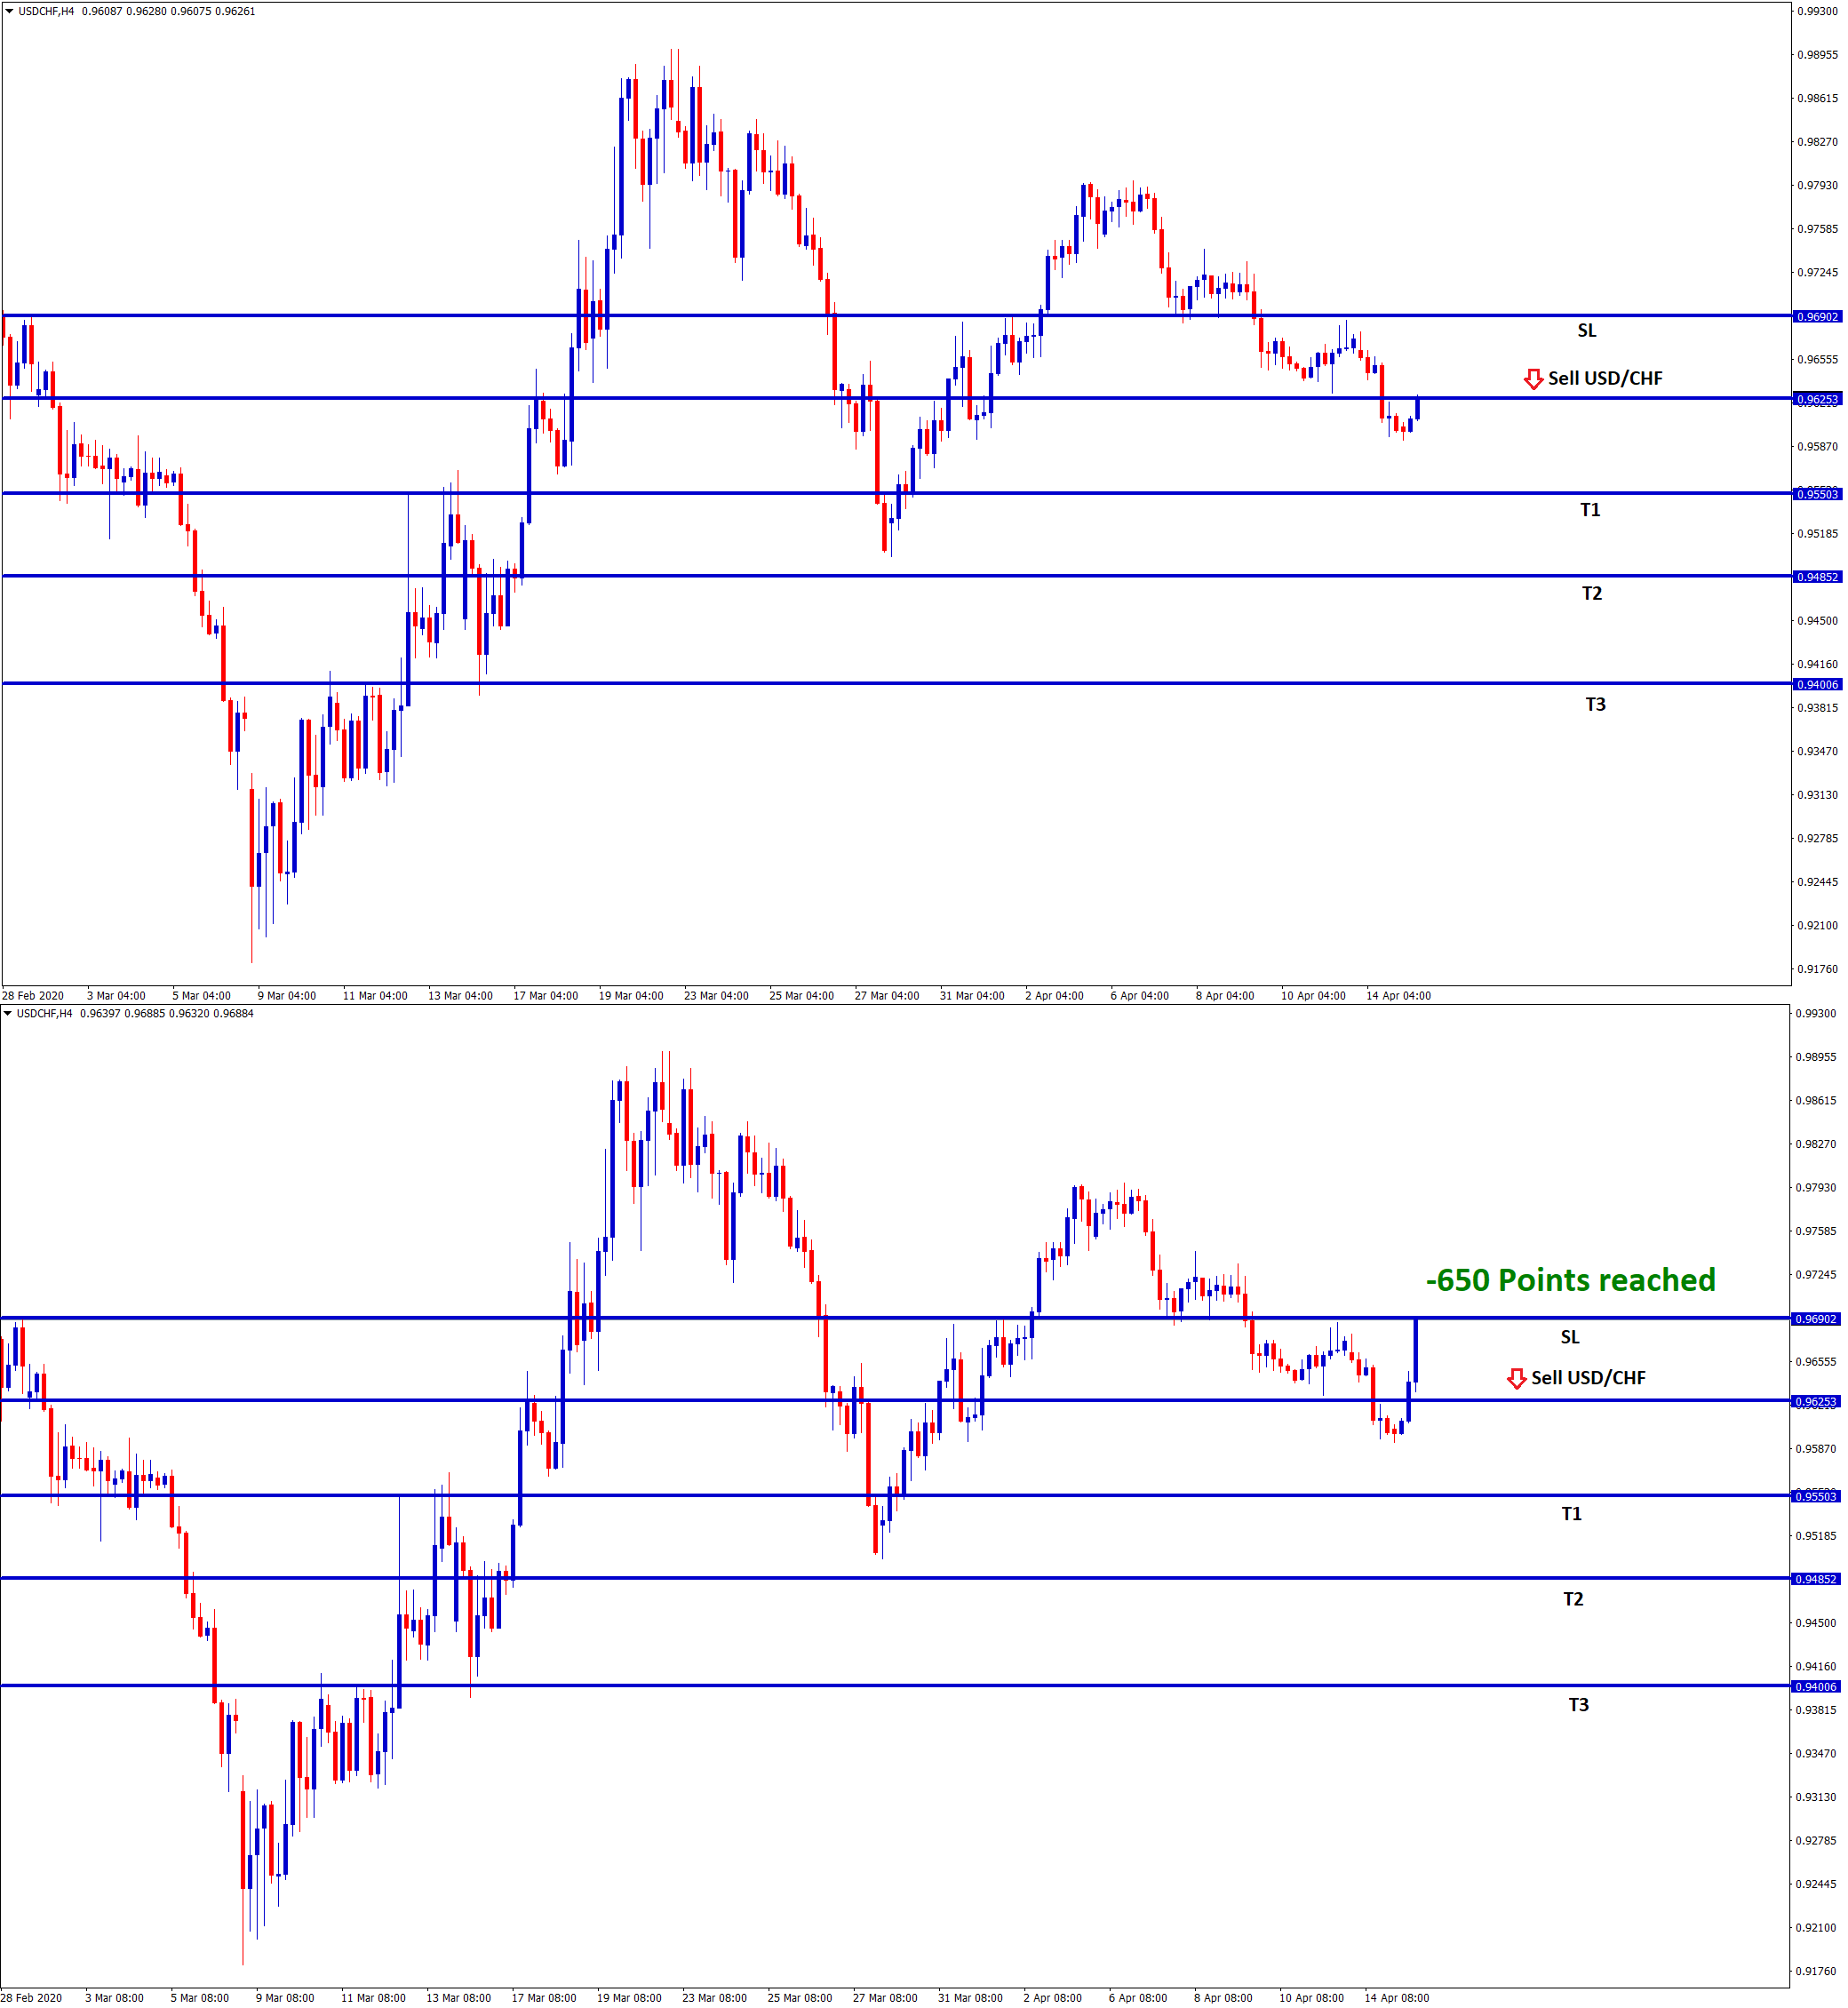 -650 points stop loss price made in usd chf buy signal